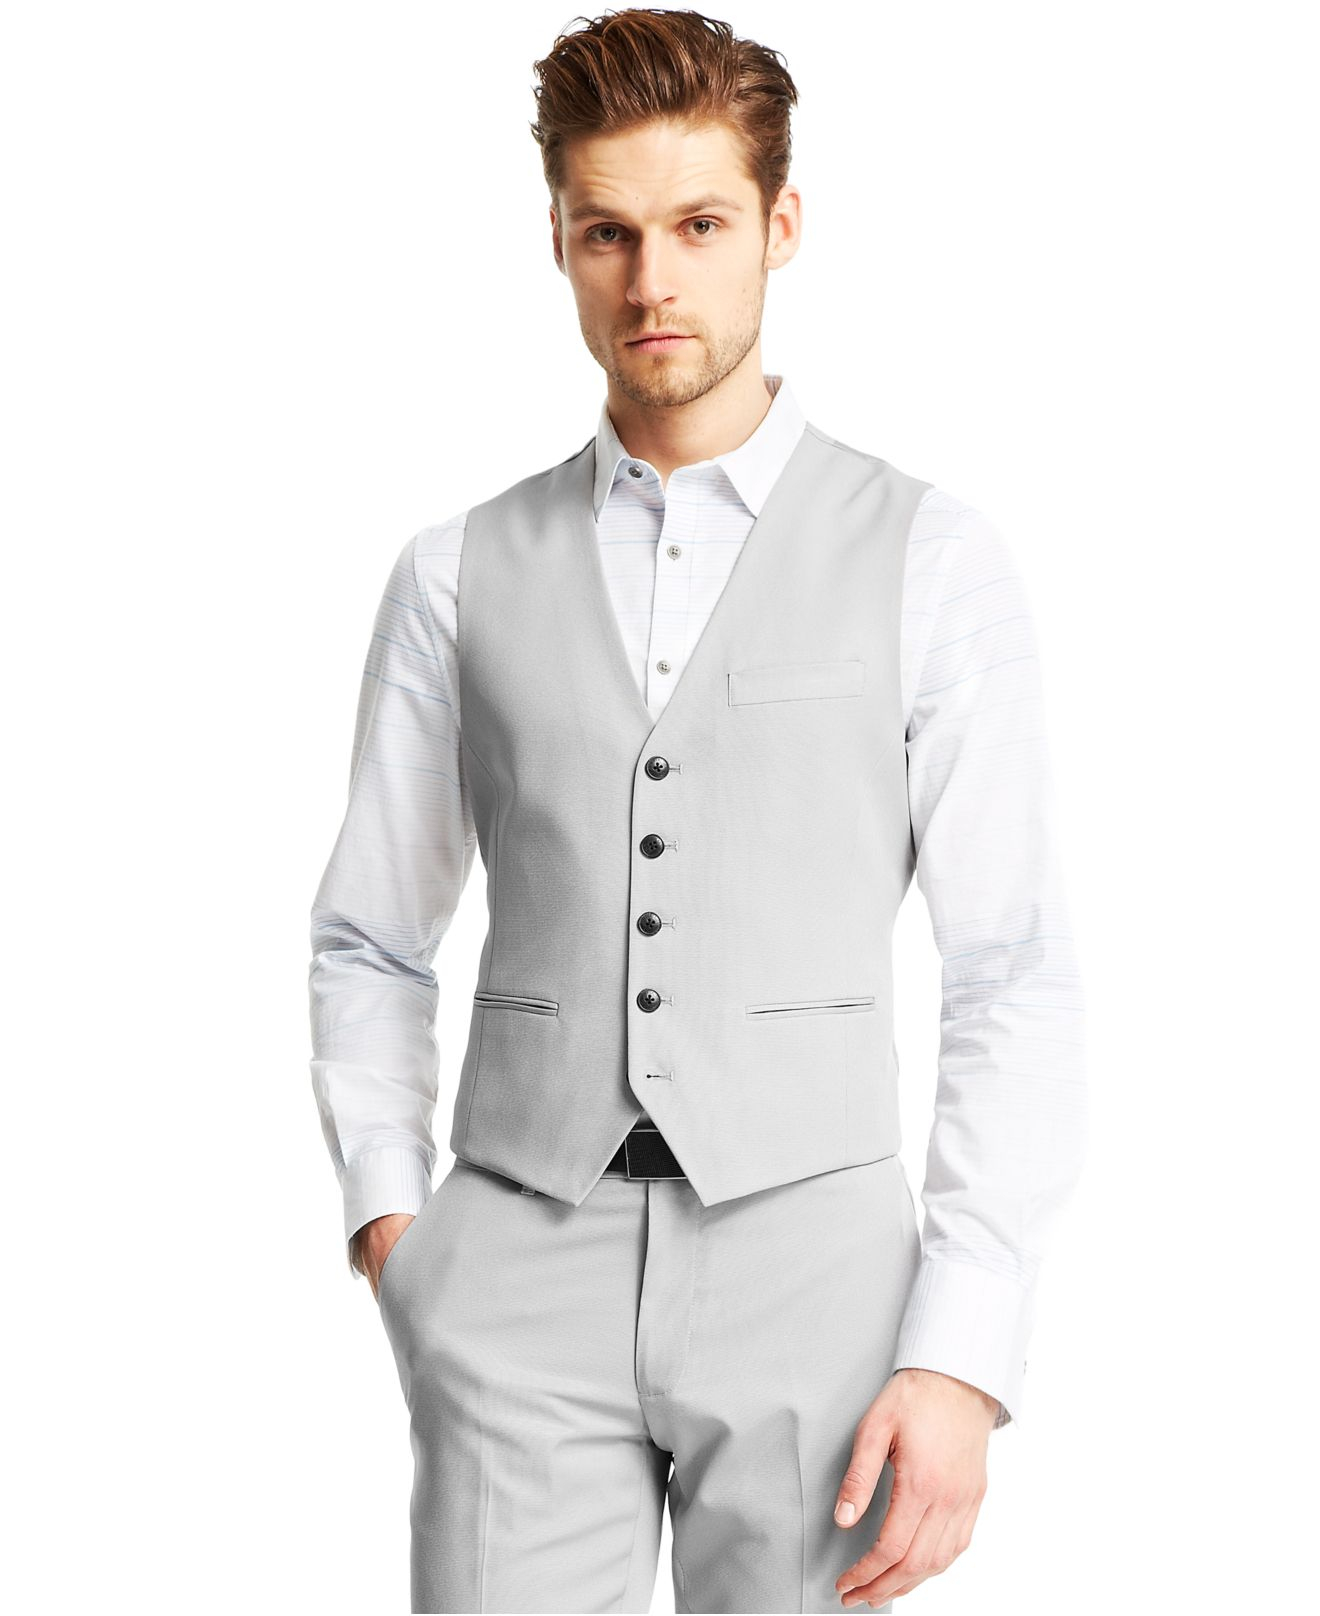 how to wear a grey vest